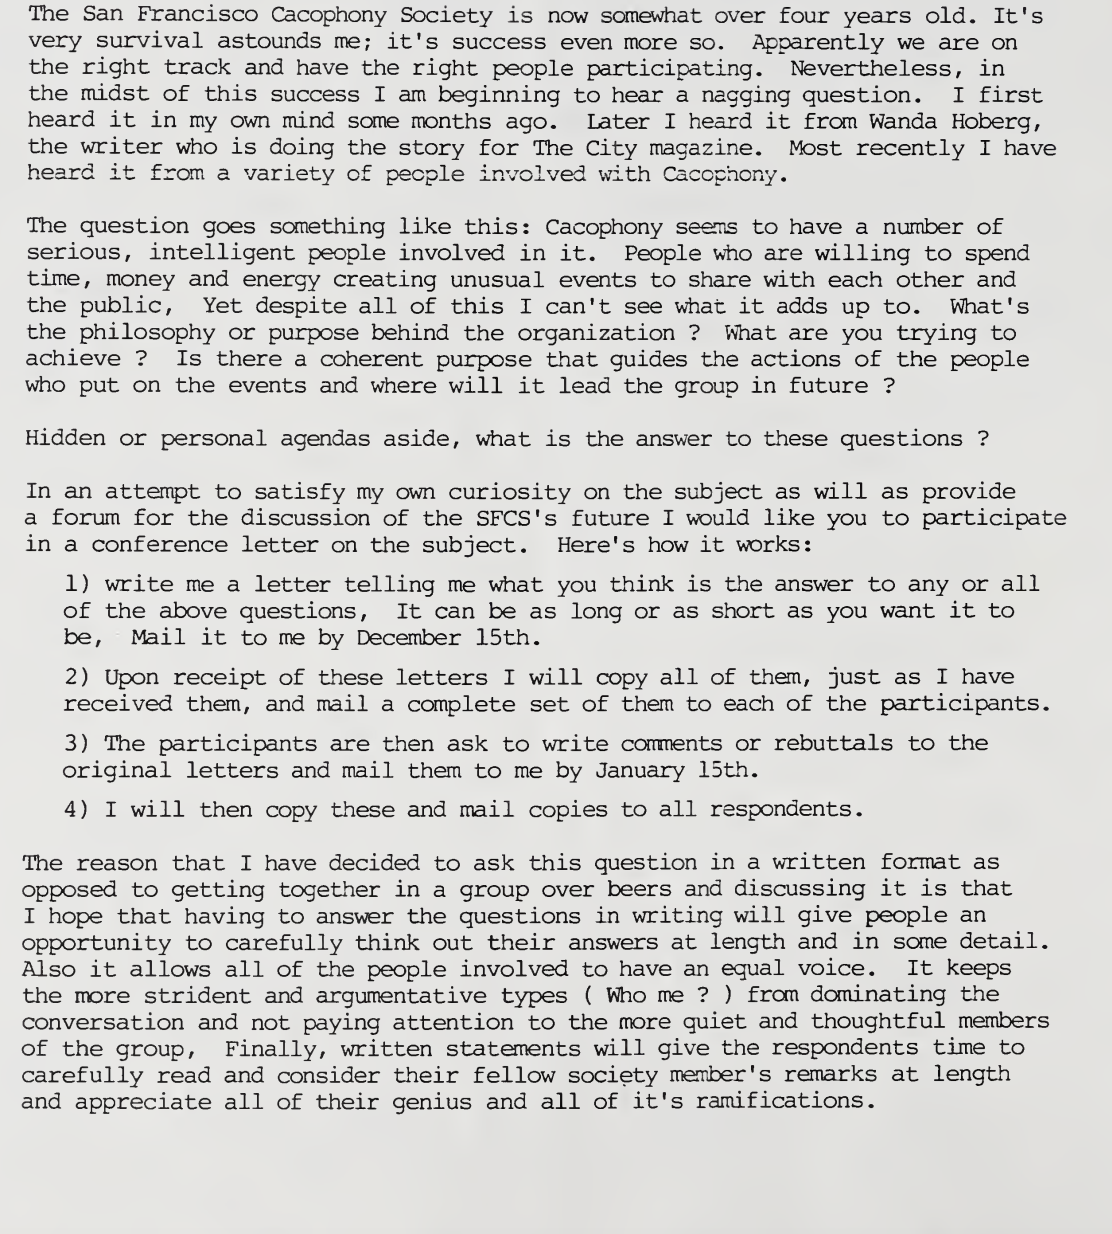 The Archives of Comments on the SF Cacophony Society (1990) -